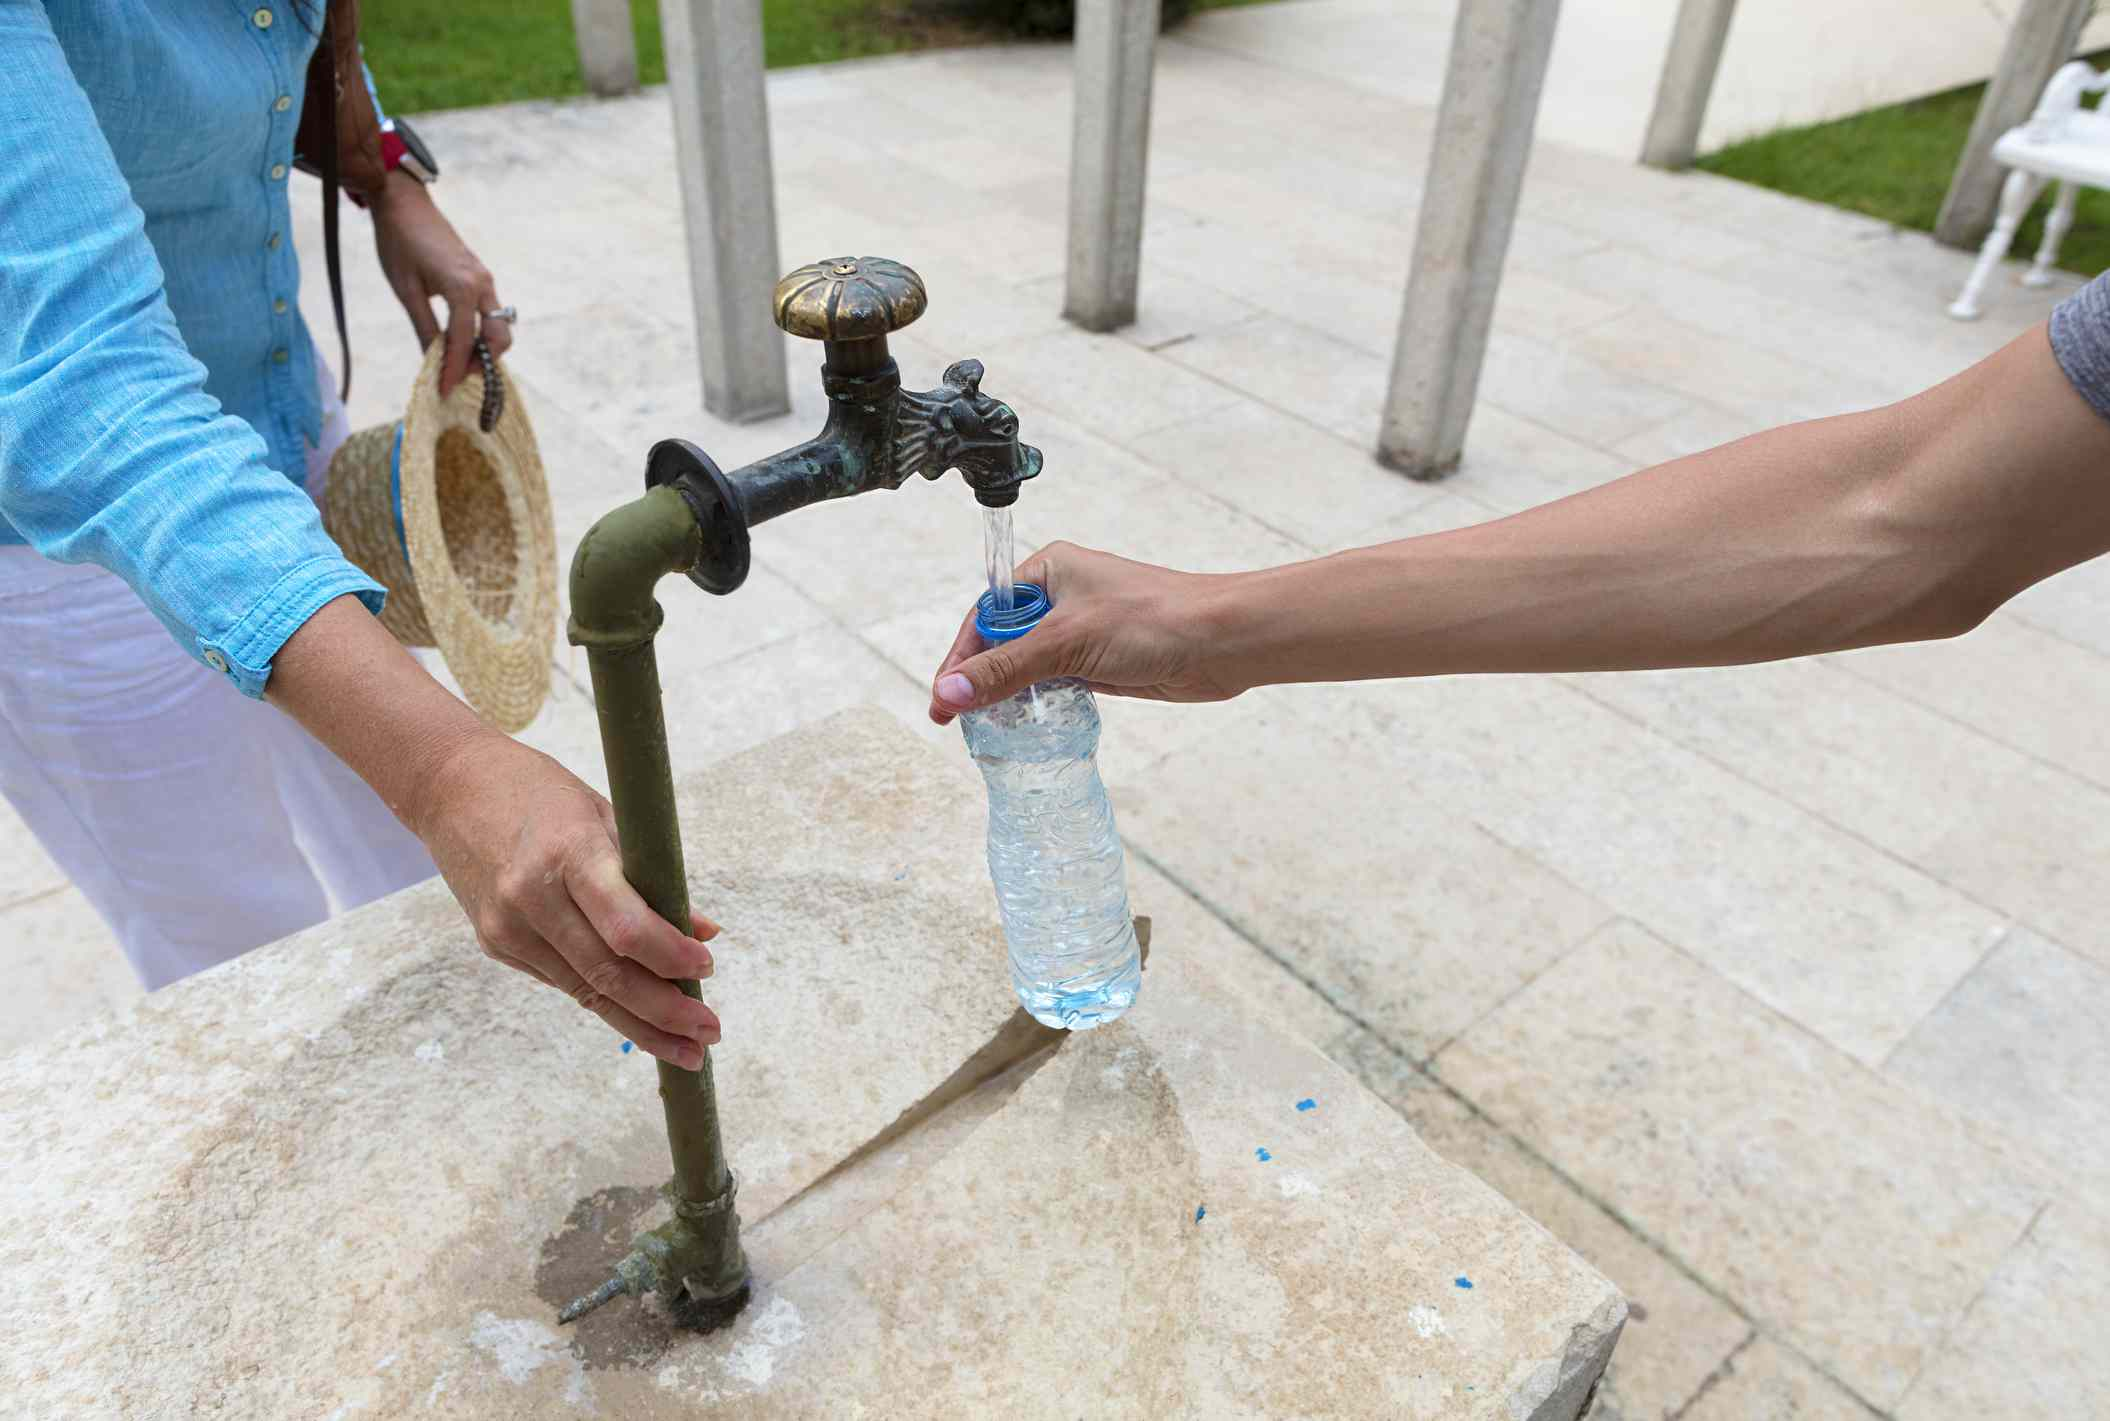 A person refilling a plastic water bottle with tap water.